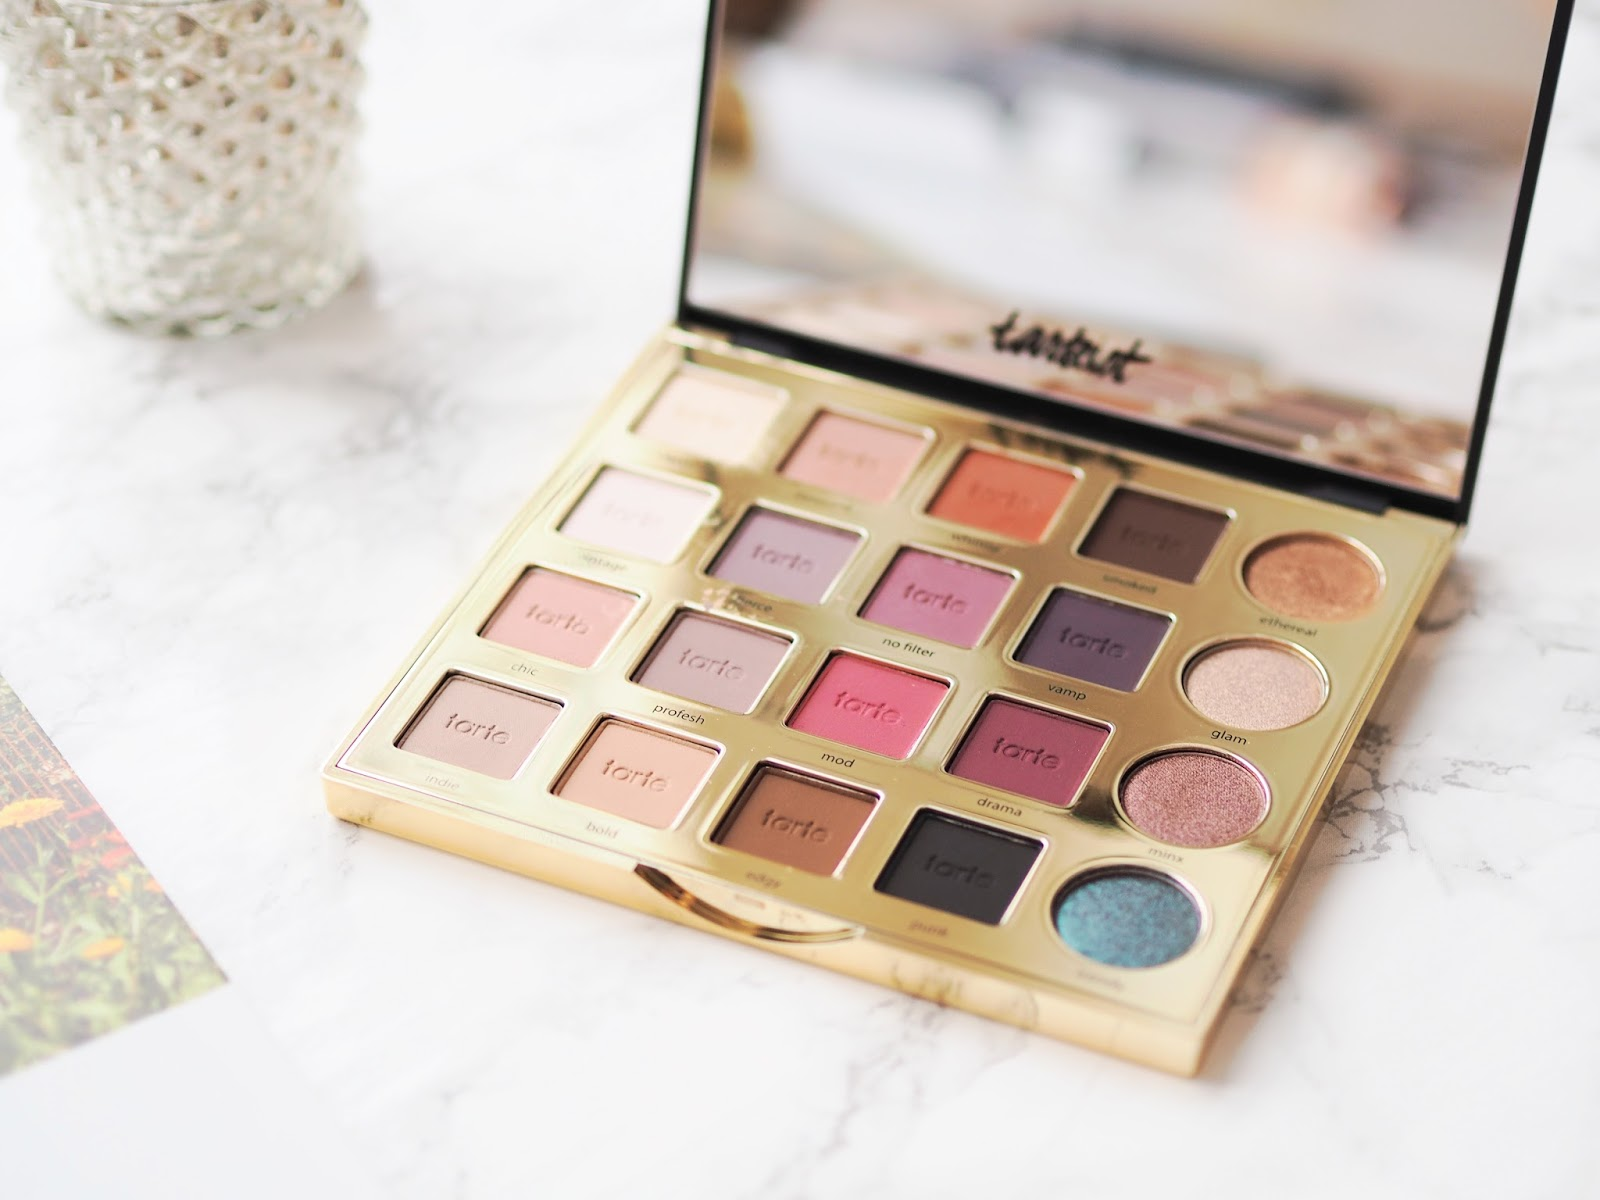 Tarte Tarteist PRO Amazonian Clay Palette, review, swatches